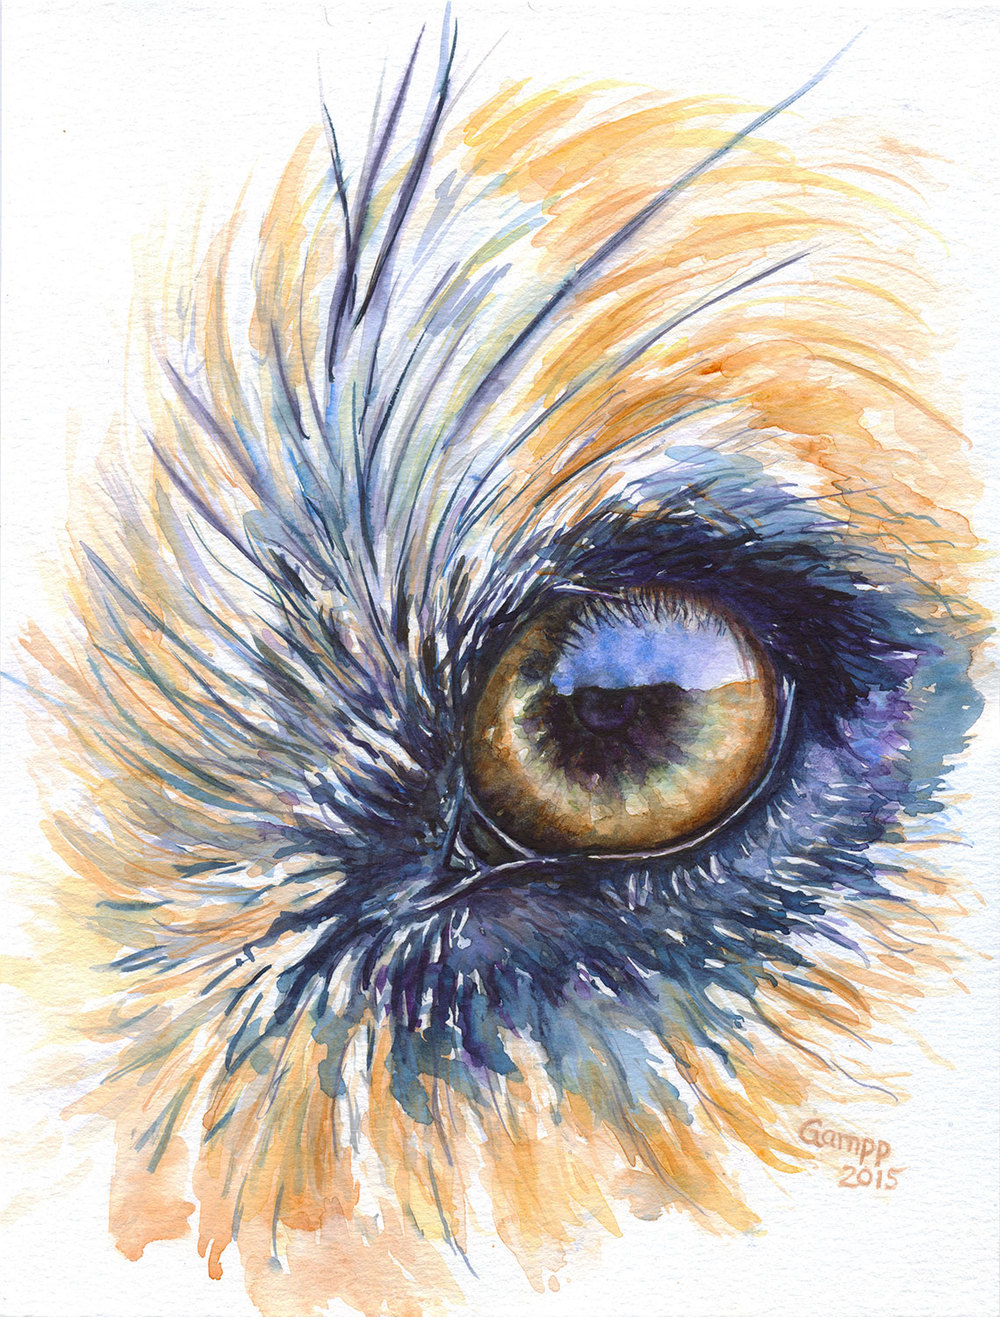 Painting of dog eye.